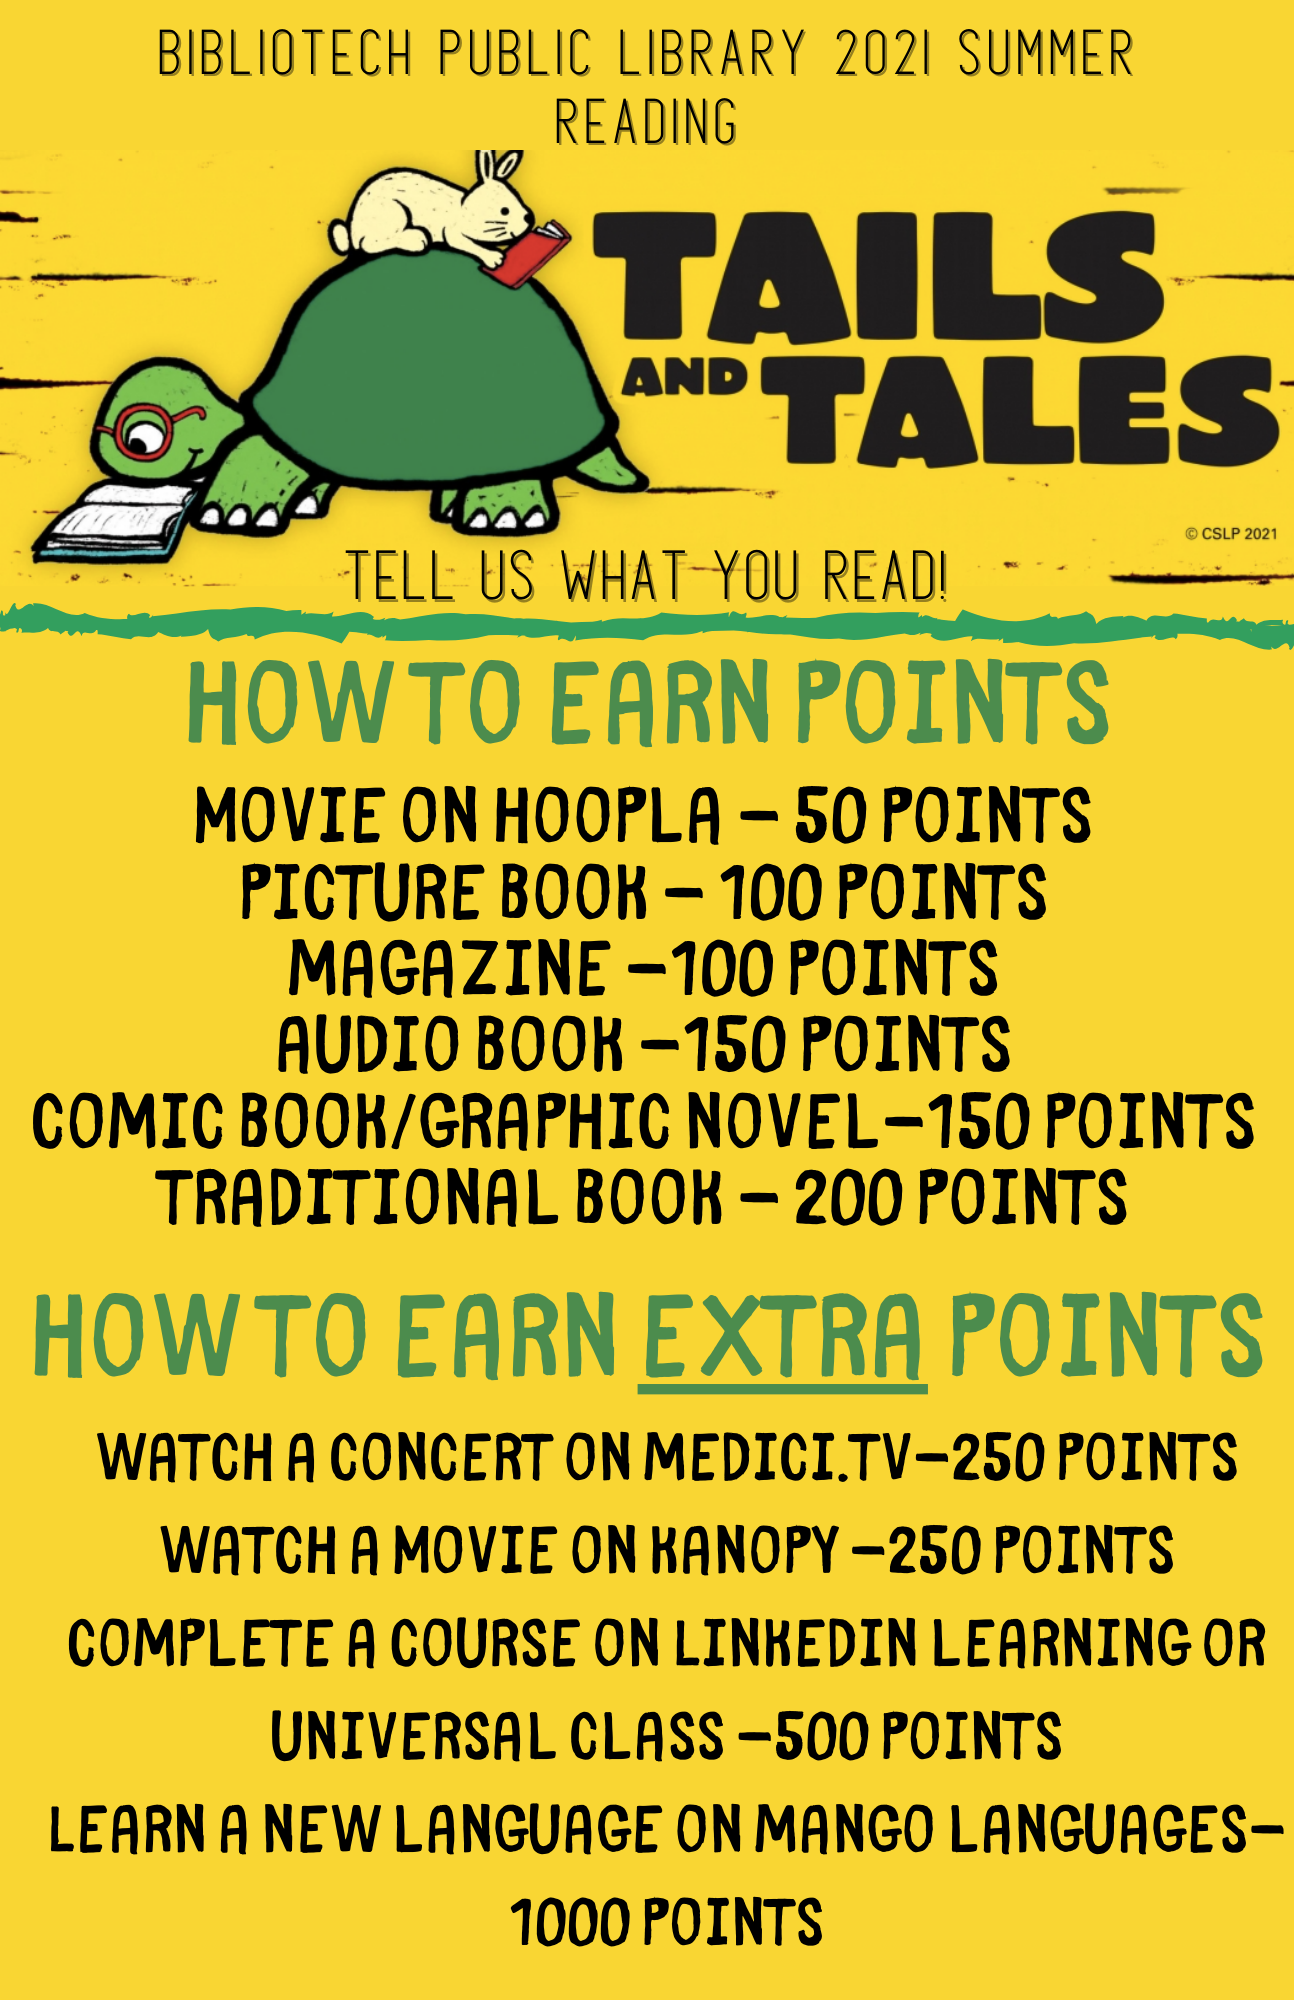 how to earn points by reading books, watching movies and more